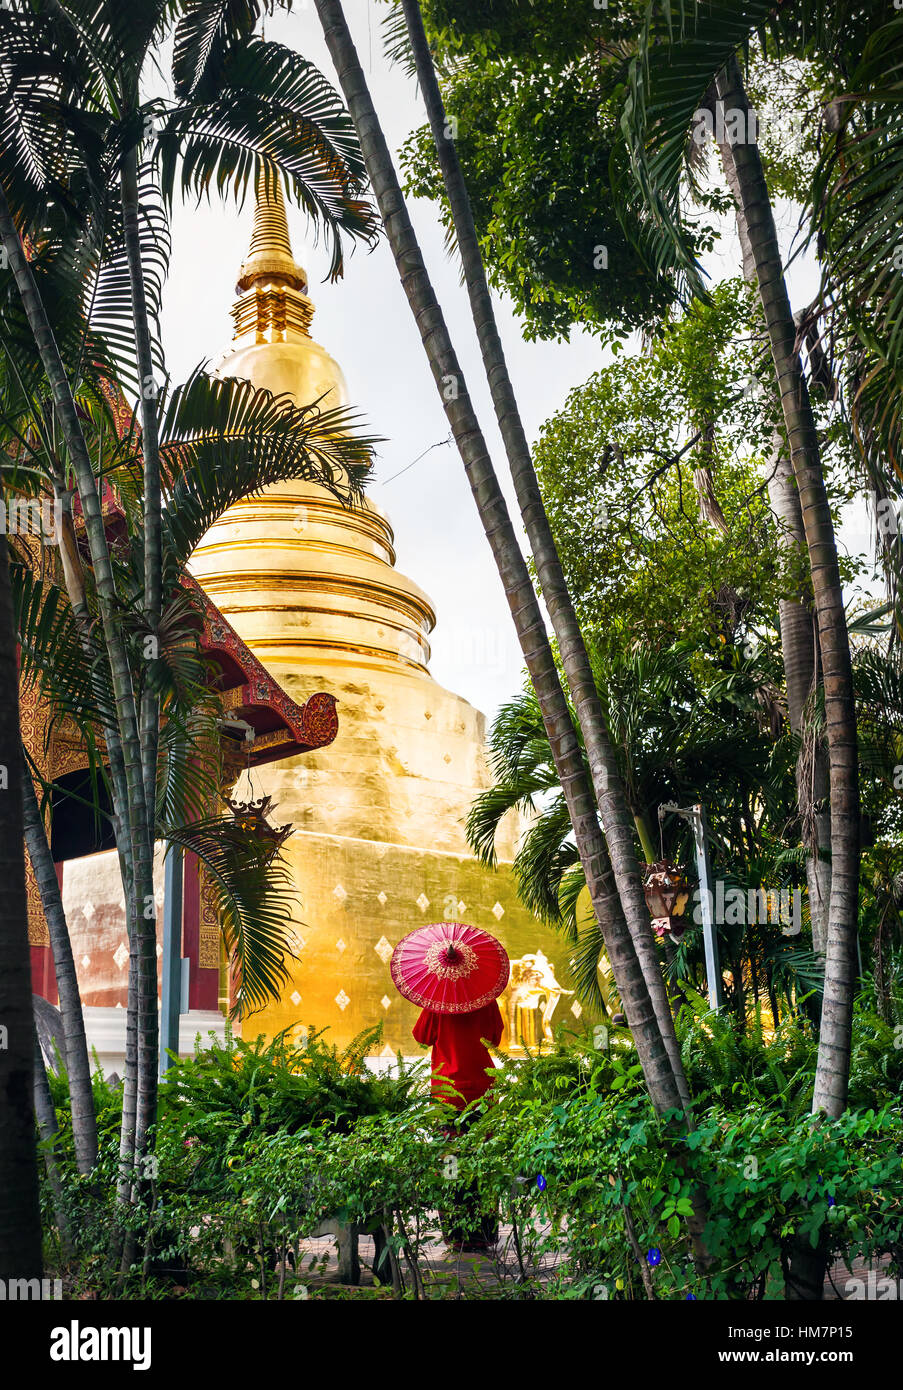 Woman tourist with red traditional Thai umbrella near Golden Stupa at temple Wat Phra Singh near bamboo tropical - Stock Image